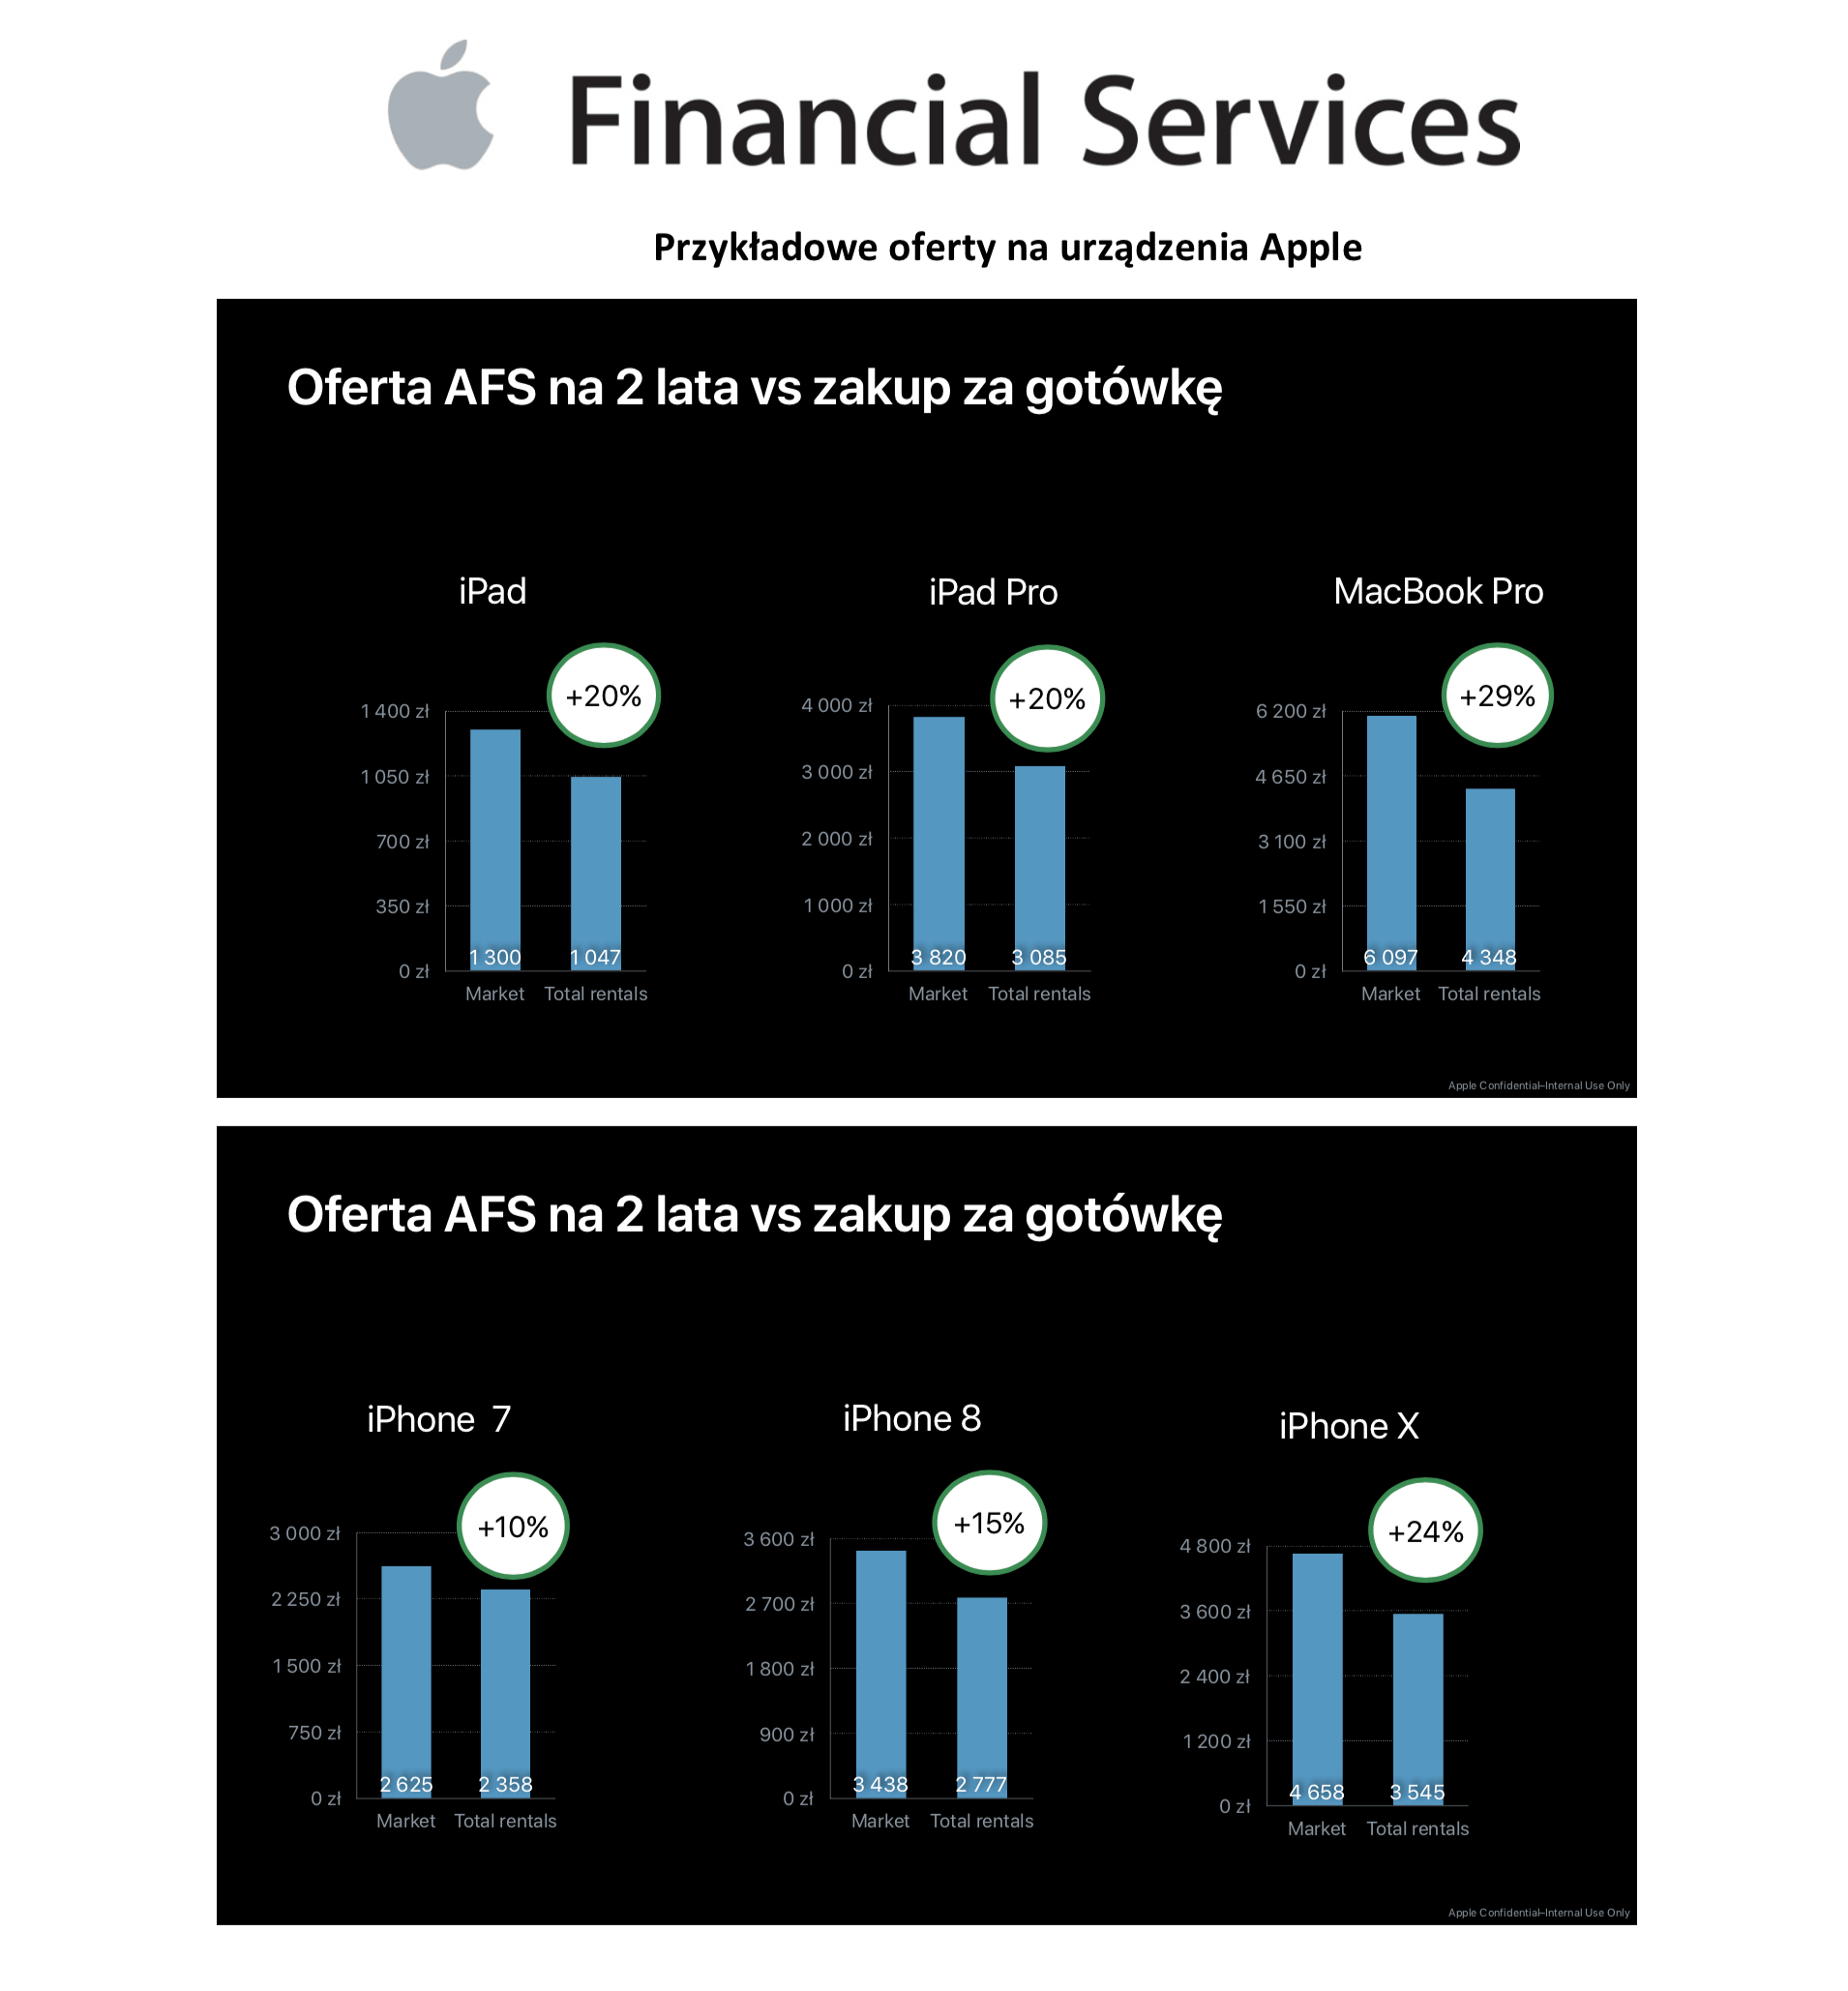 Apple Financial Services w Polsce - ile to kosztuje?